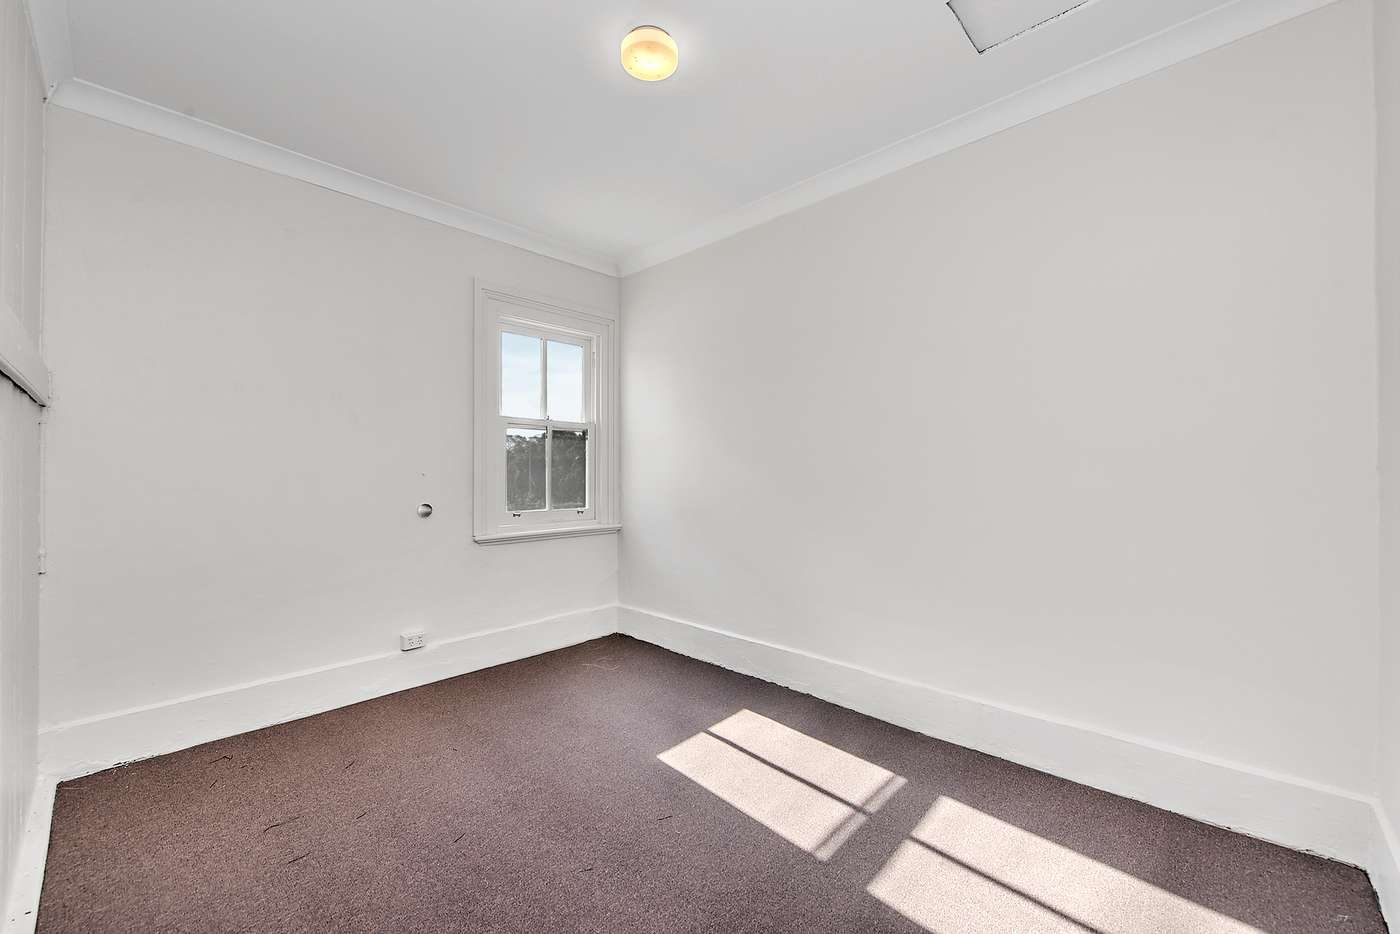 Seventh view of Homely house listing, 5 St Peters Street, St Peters NSW 2044